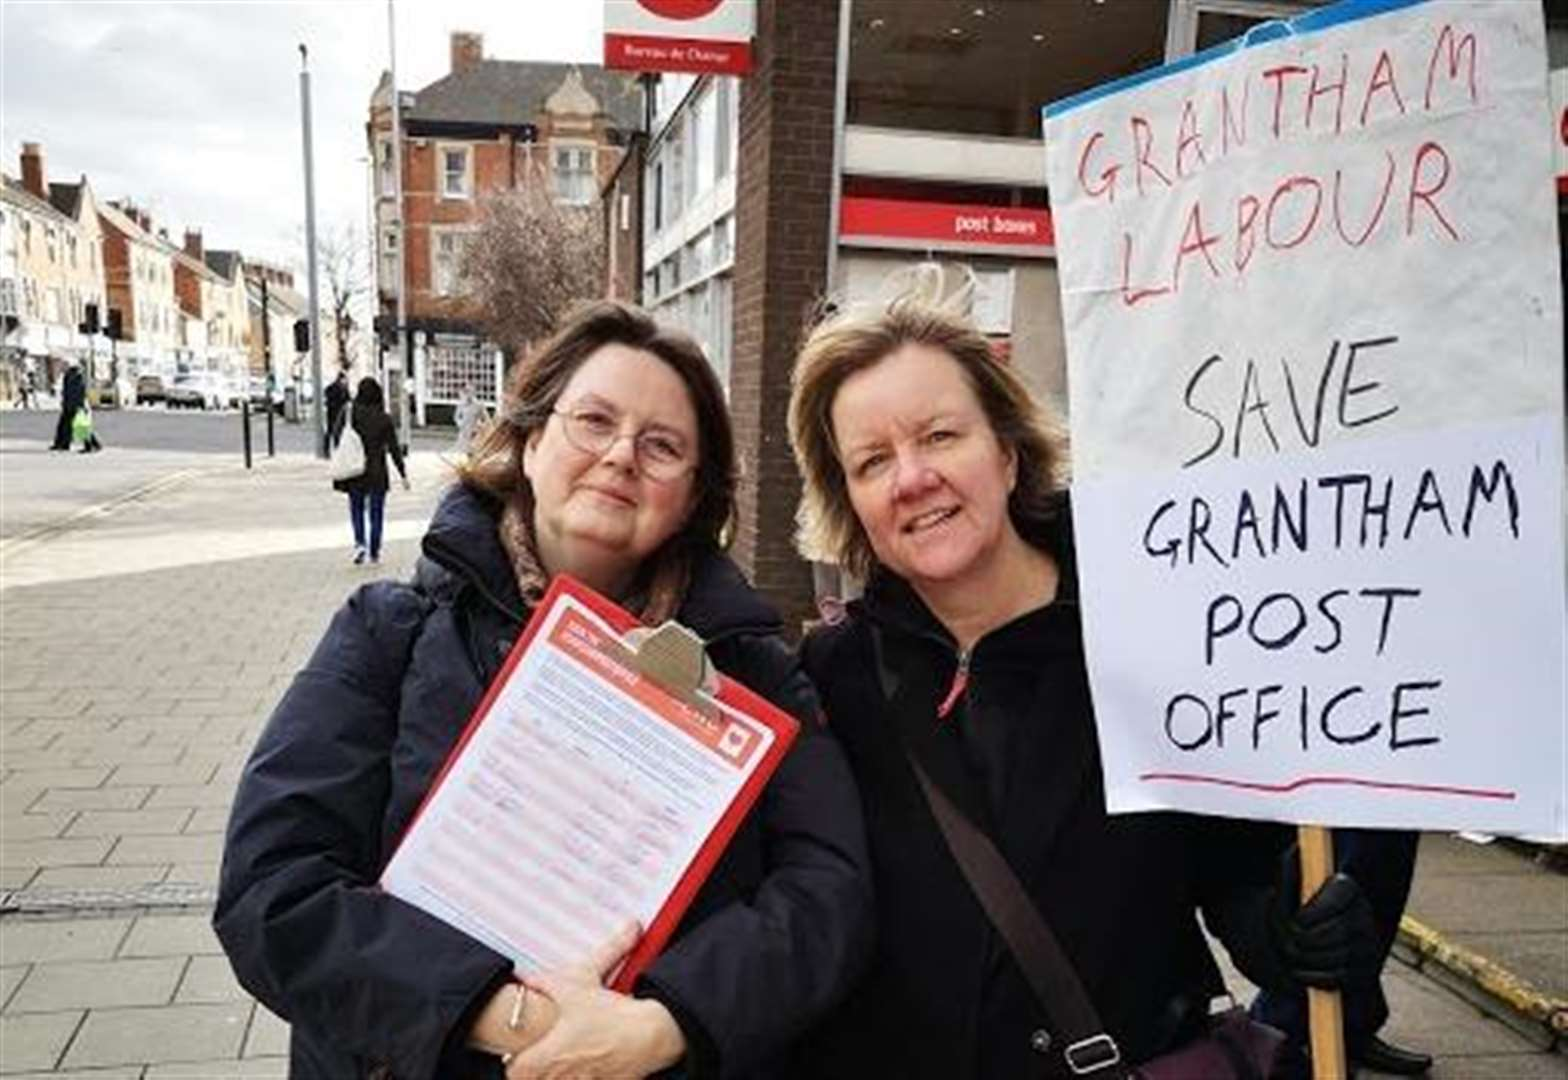 Protest held outside Grantham post office against closure plans